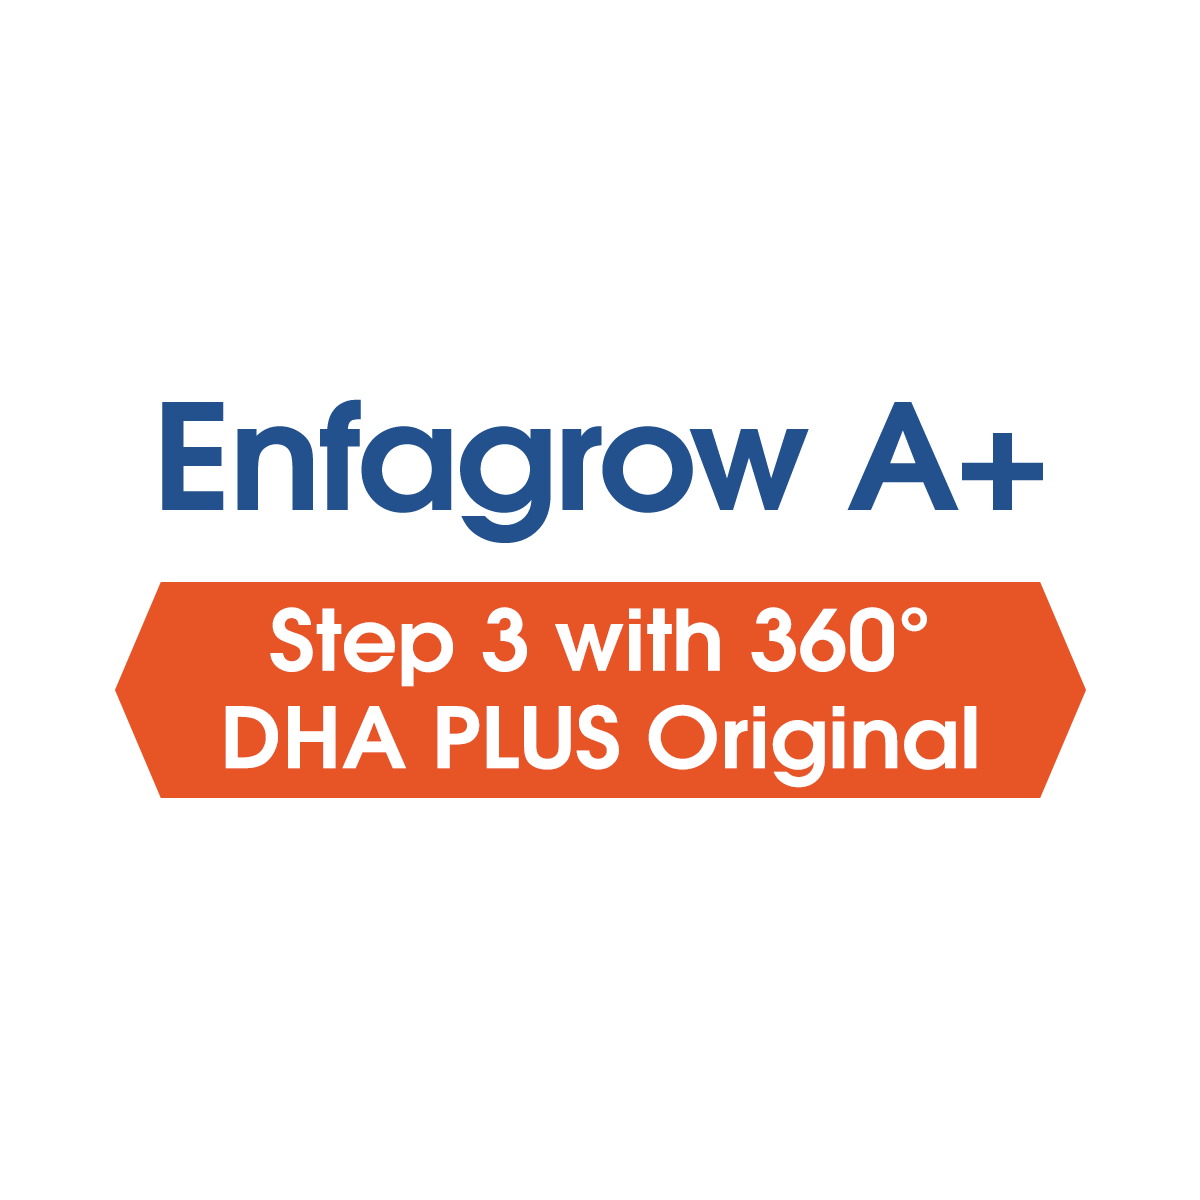 Enfagrow A+ Step 3 Original